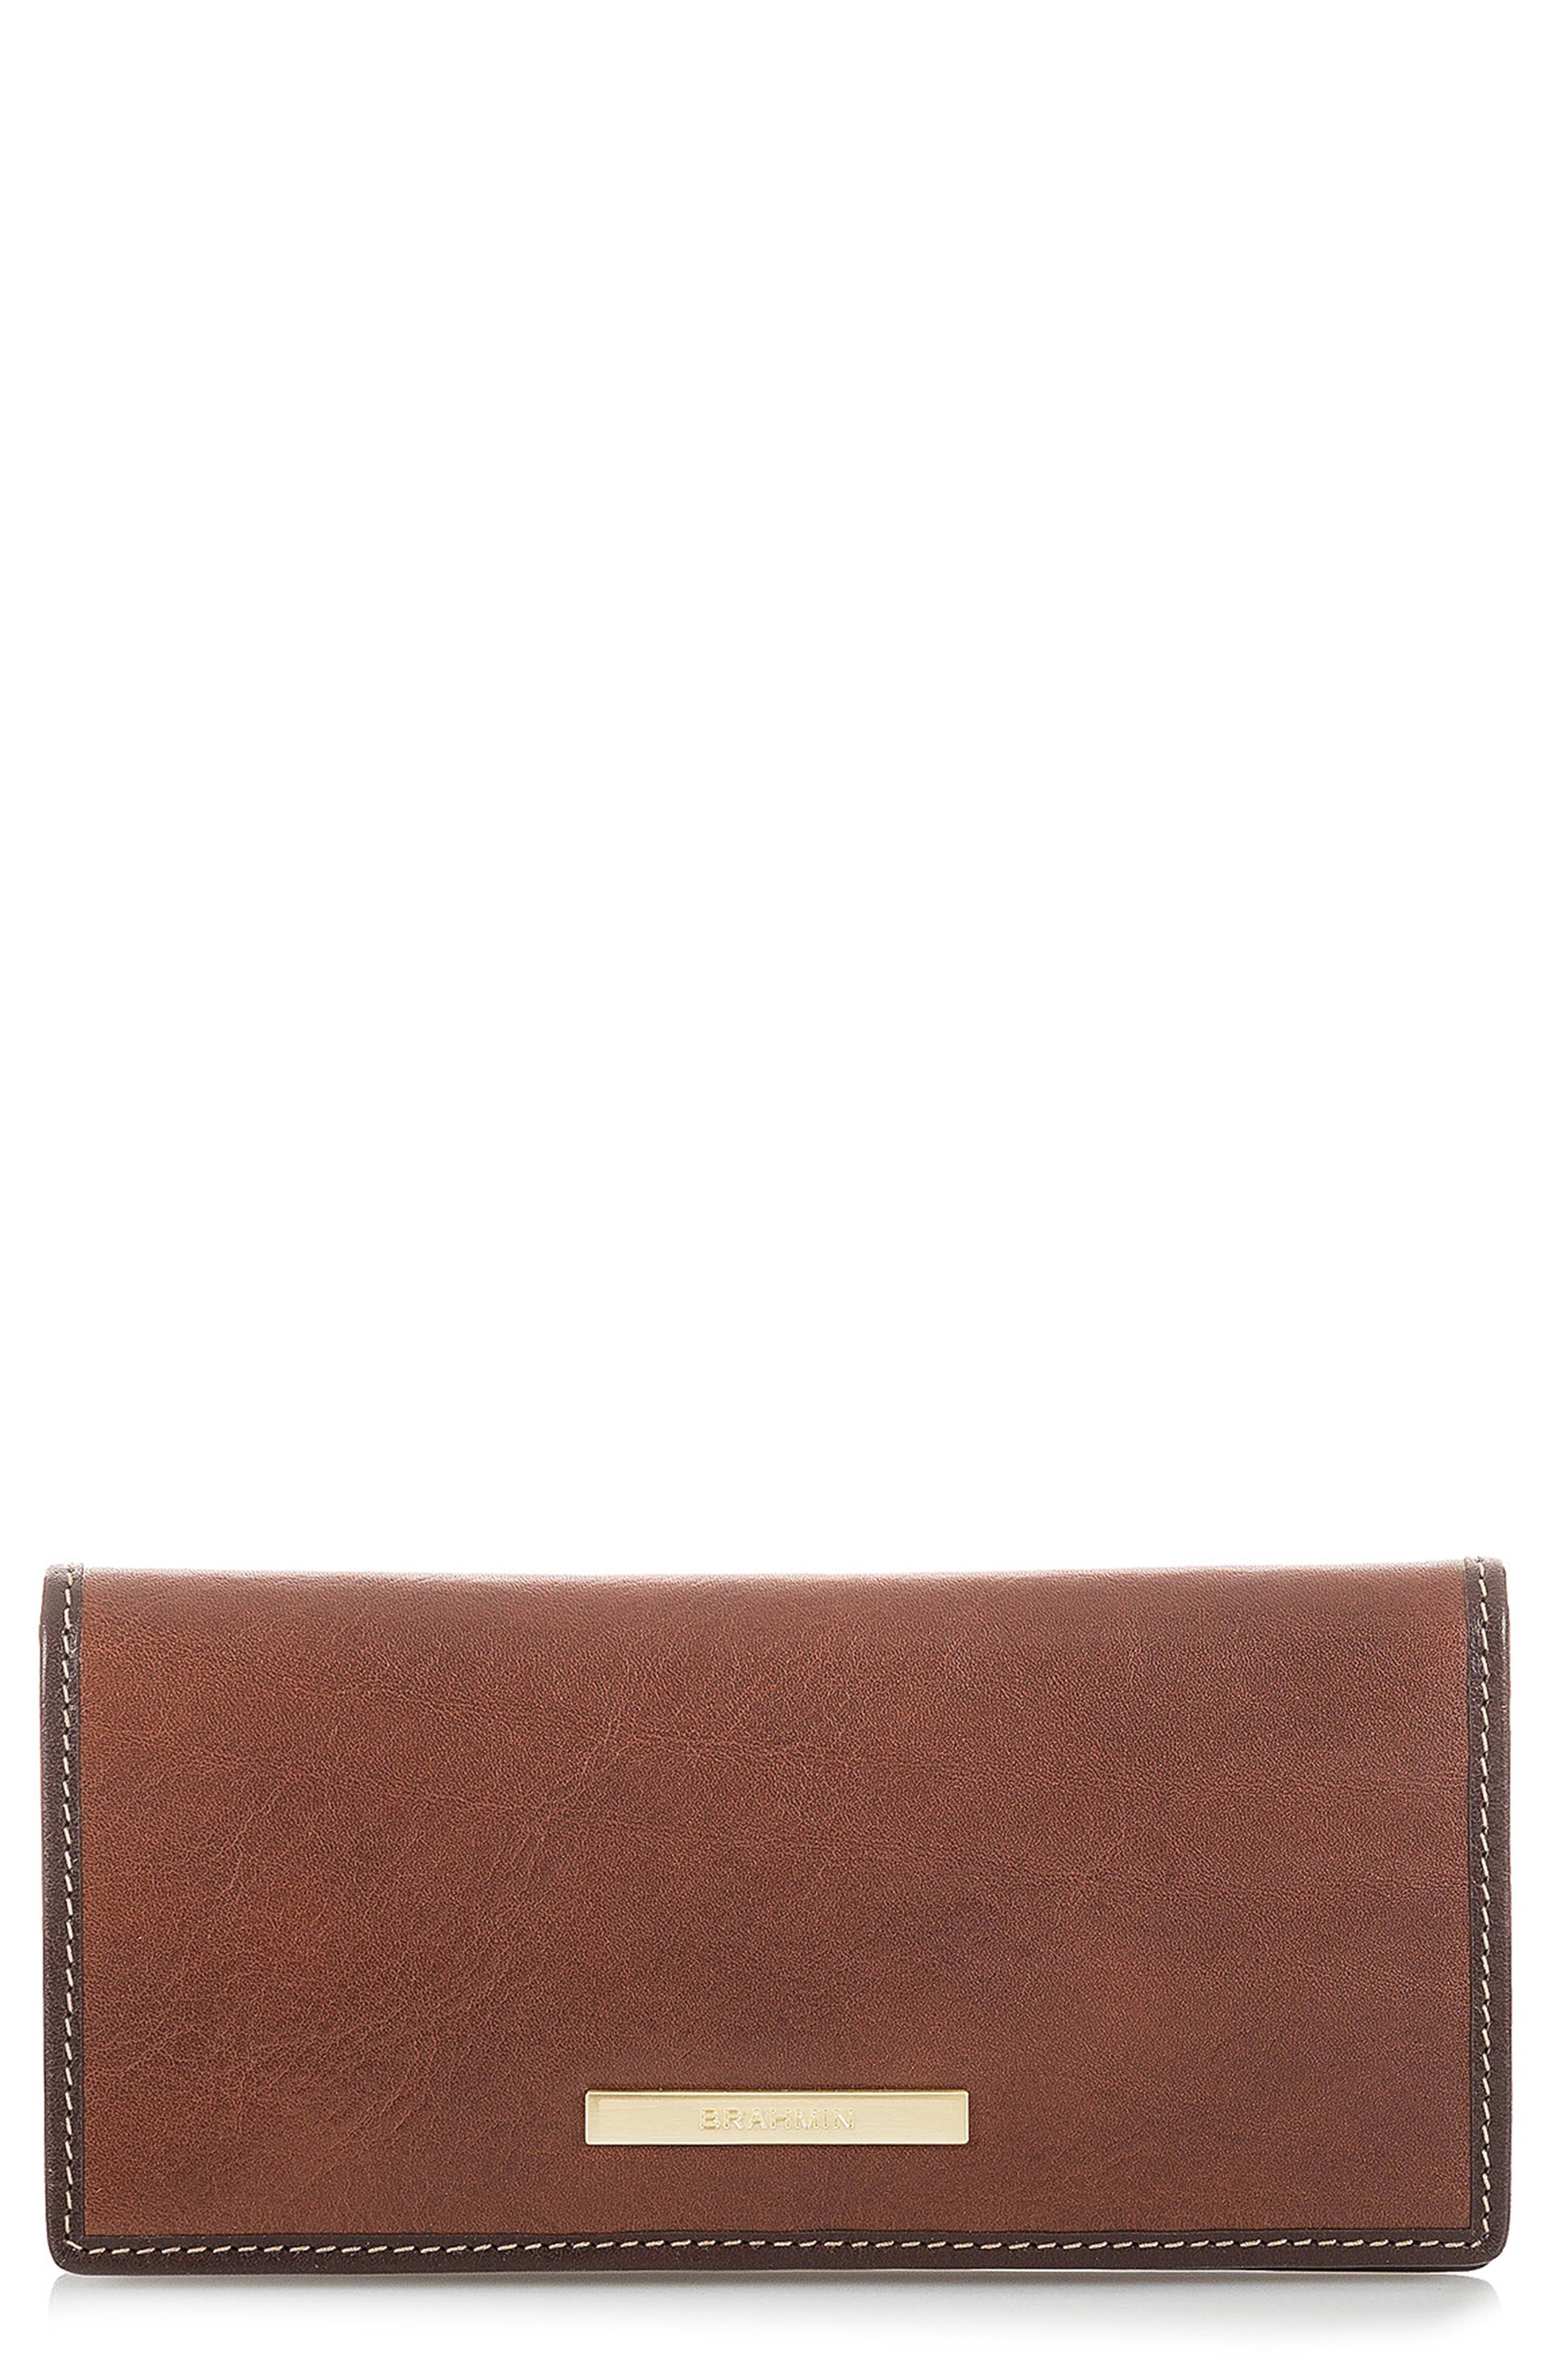 Ady Leather Wallet,                             Main thumbnail 1, color,                             200